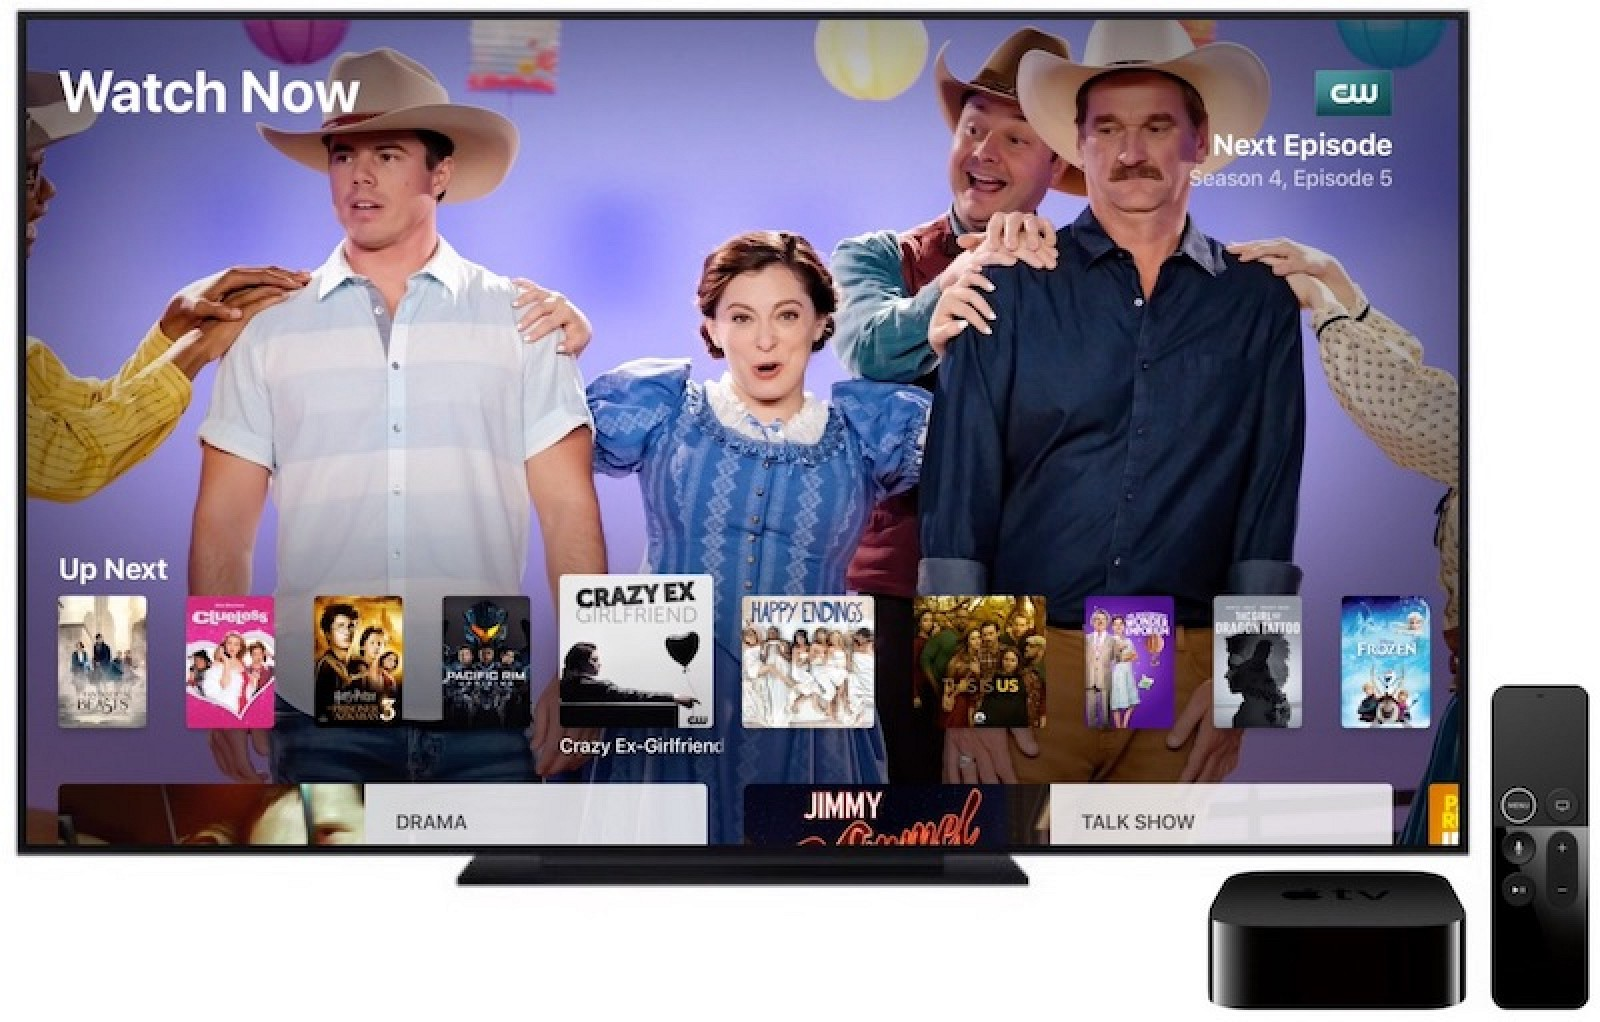 Apple Plans to Sell Bundles of Cable TV Channels Through New